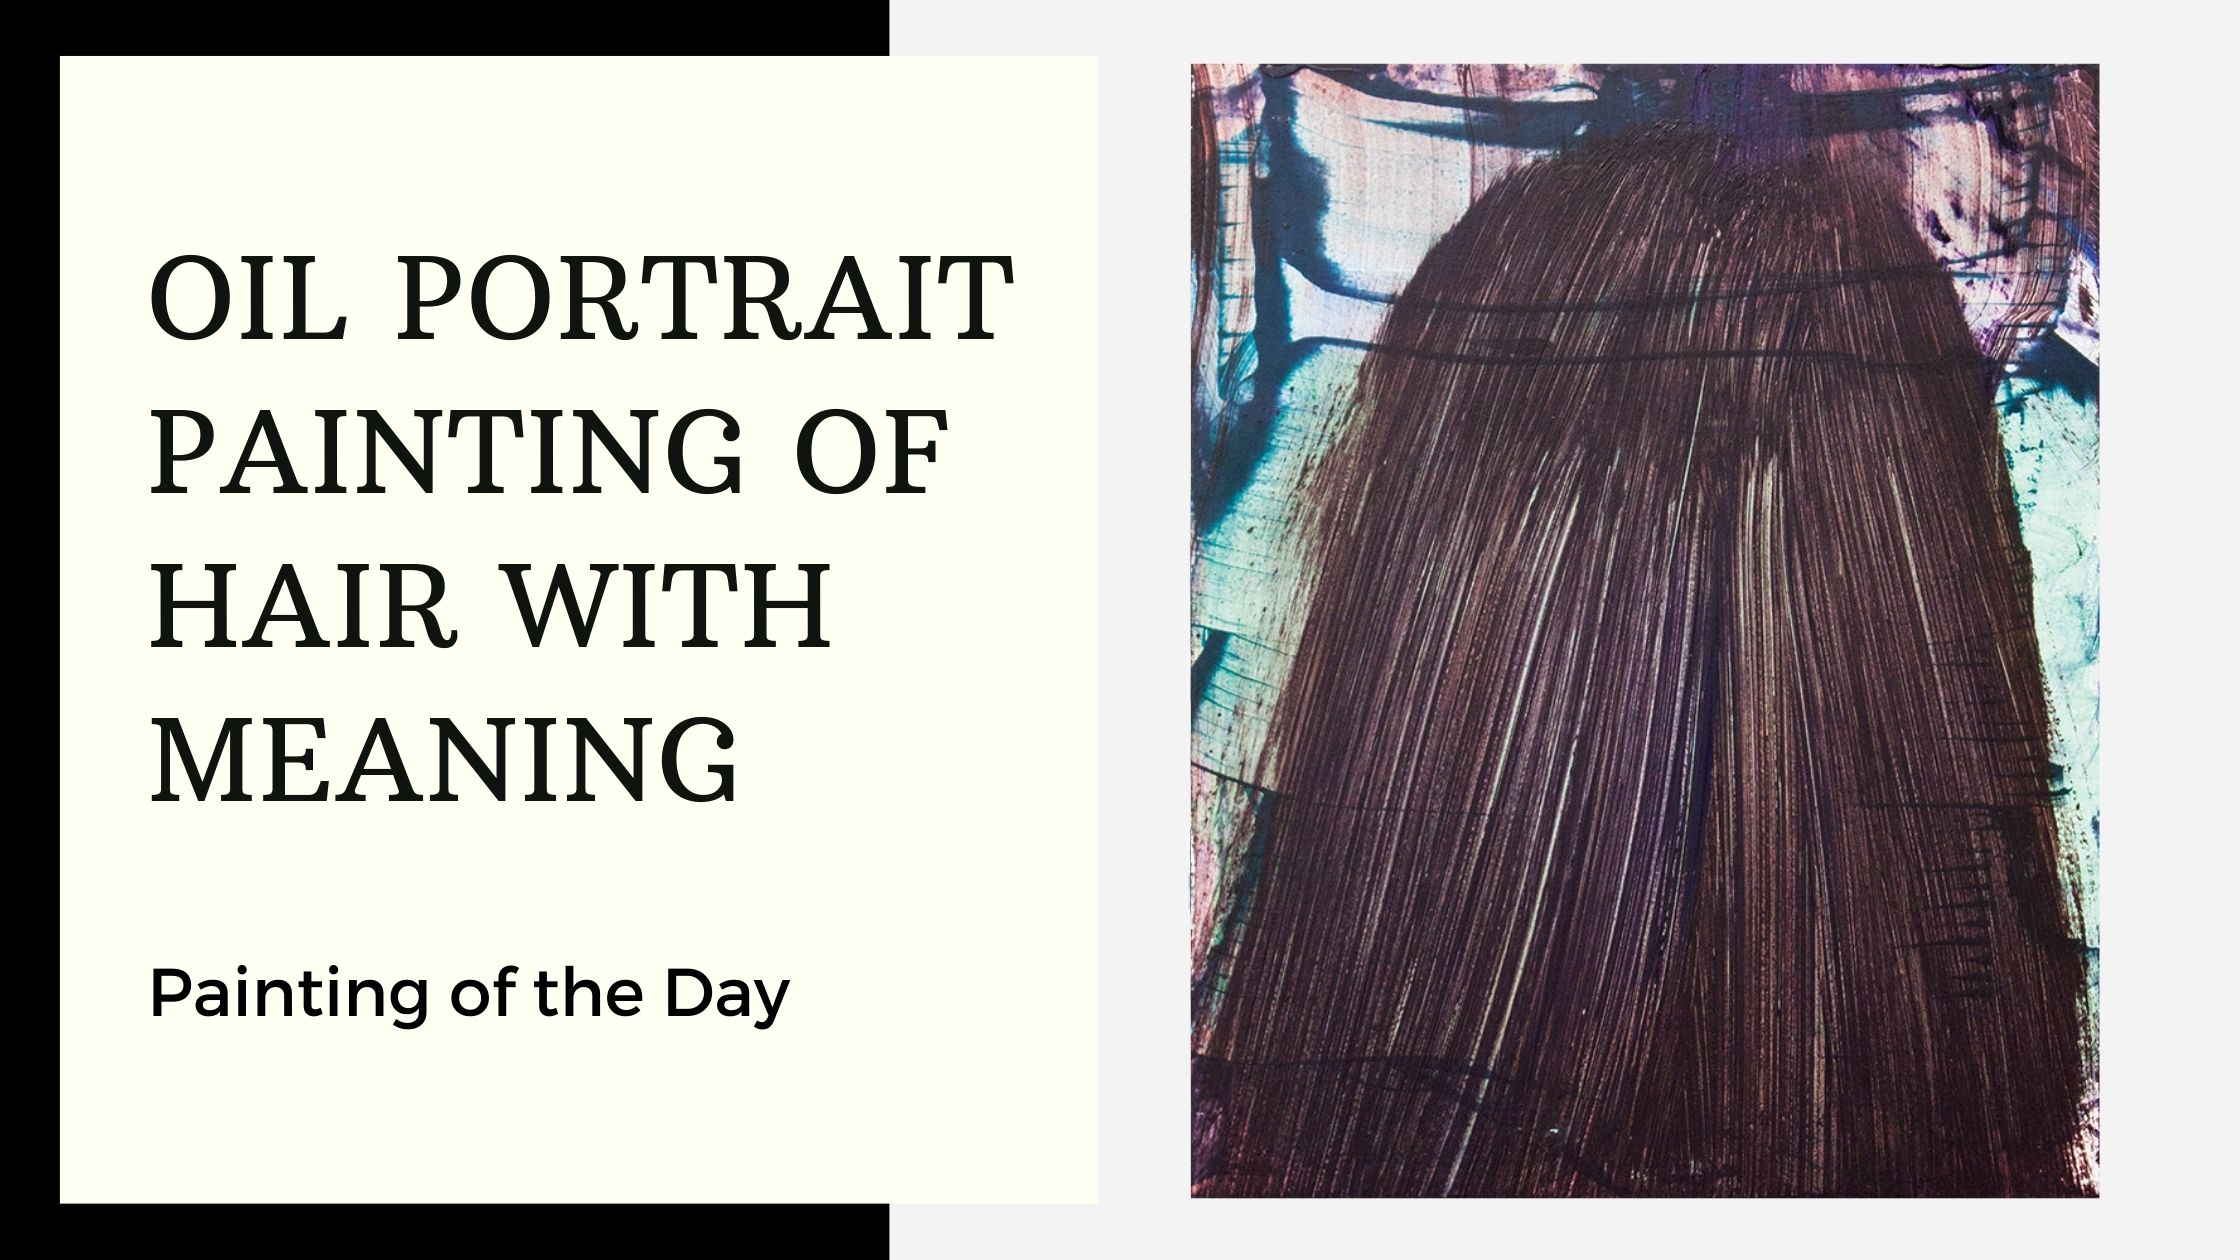 Oil Portrait Painting of Hair With Meaning